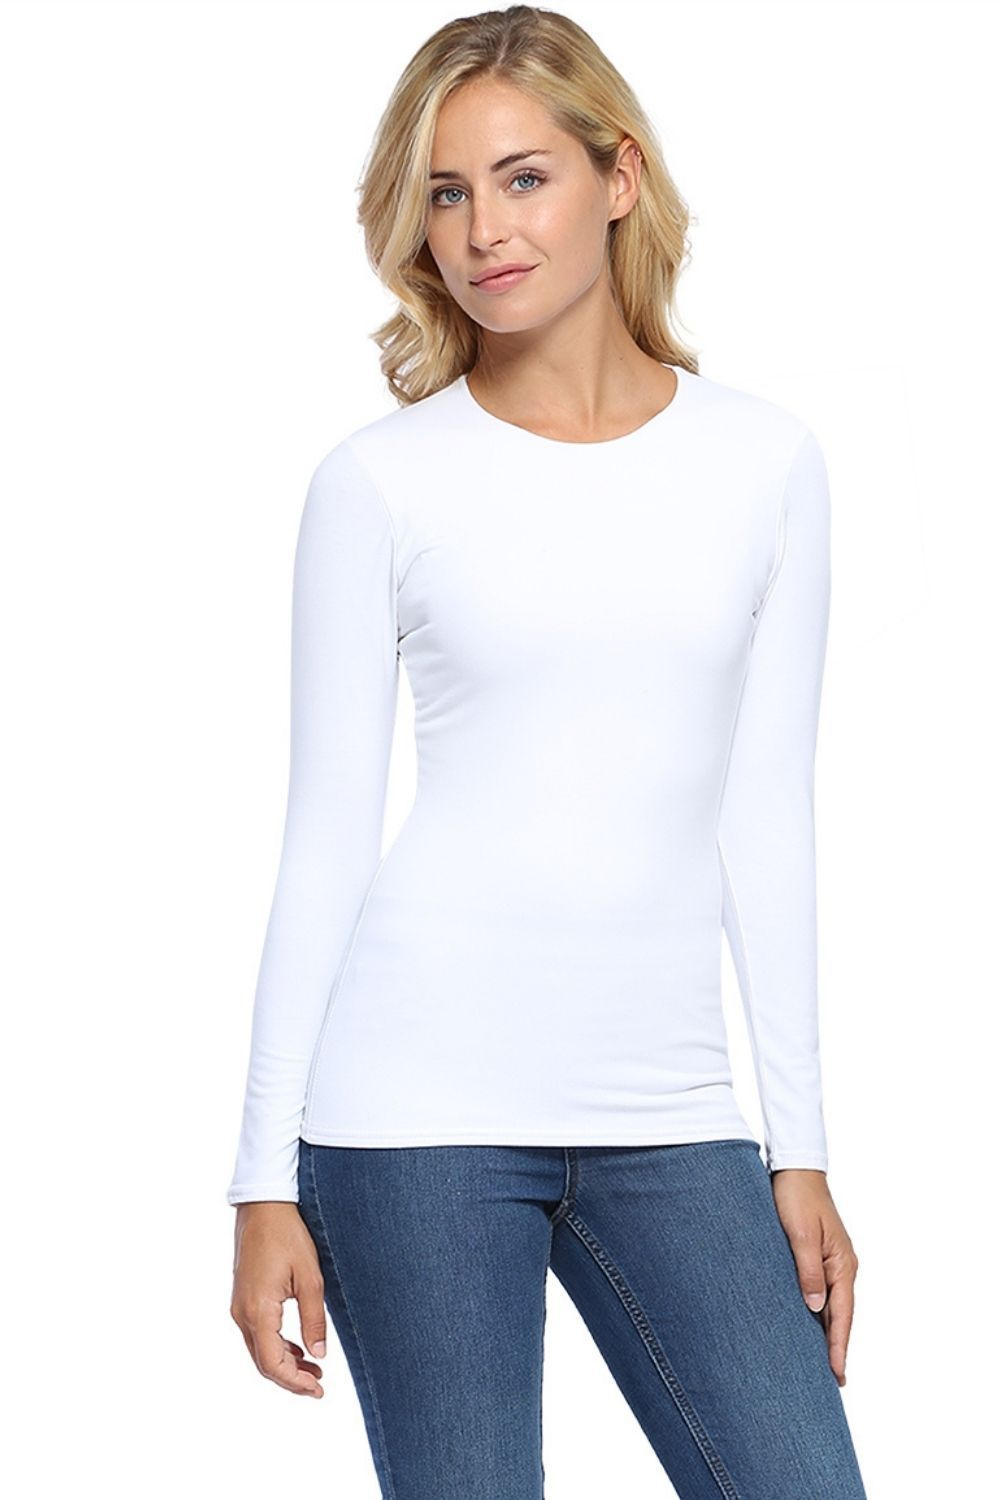 Katia Long Sleeve Tshirt White